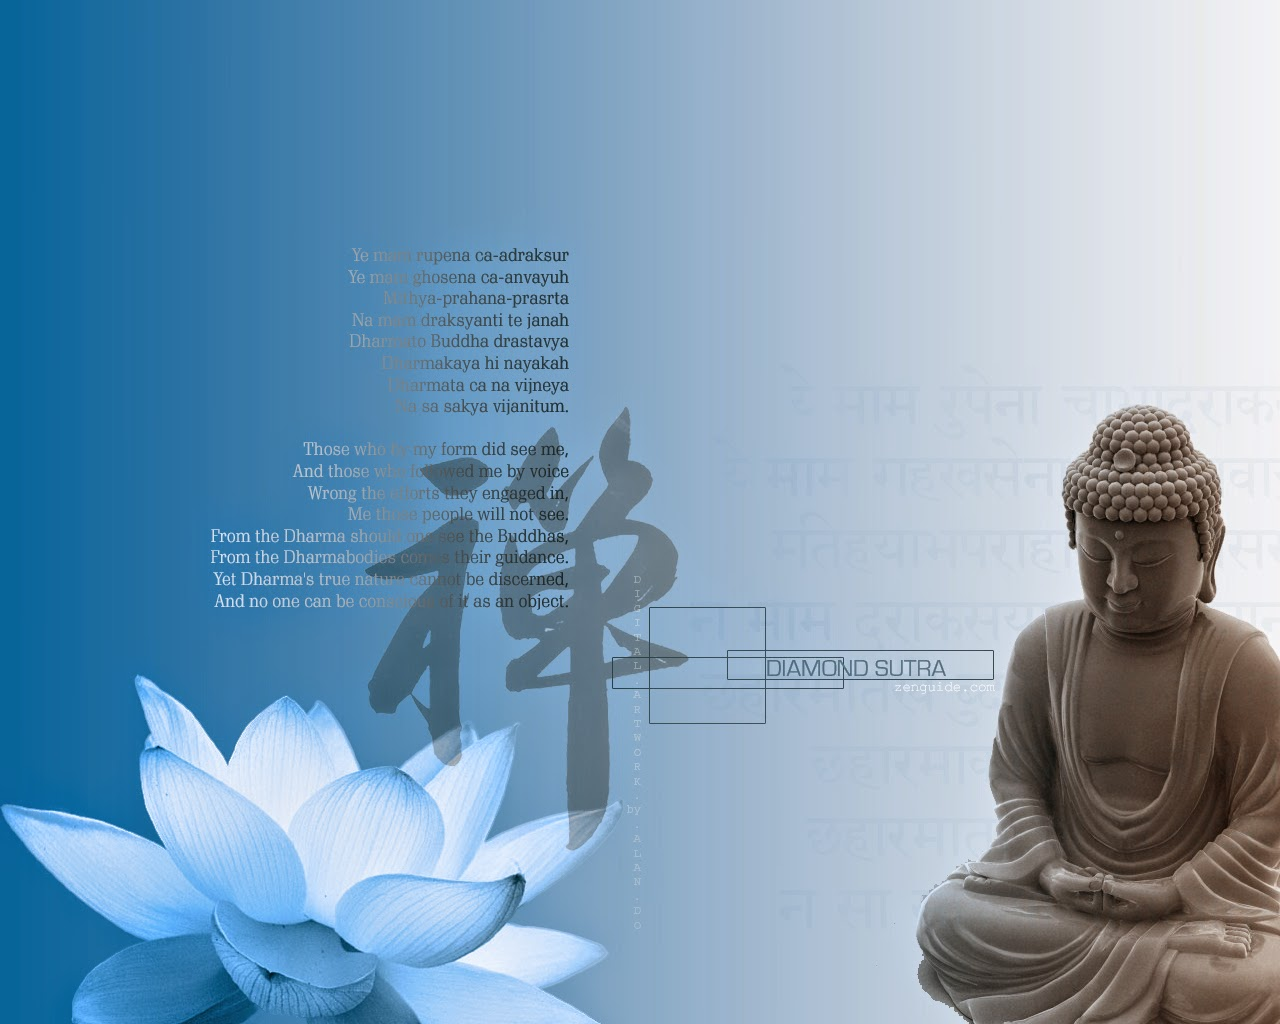 fantasy-abstract-graphics-buddha-picture.jpg